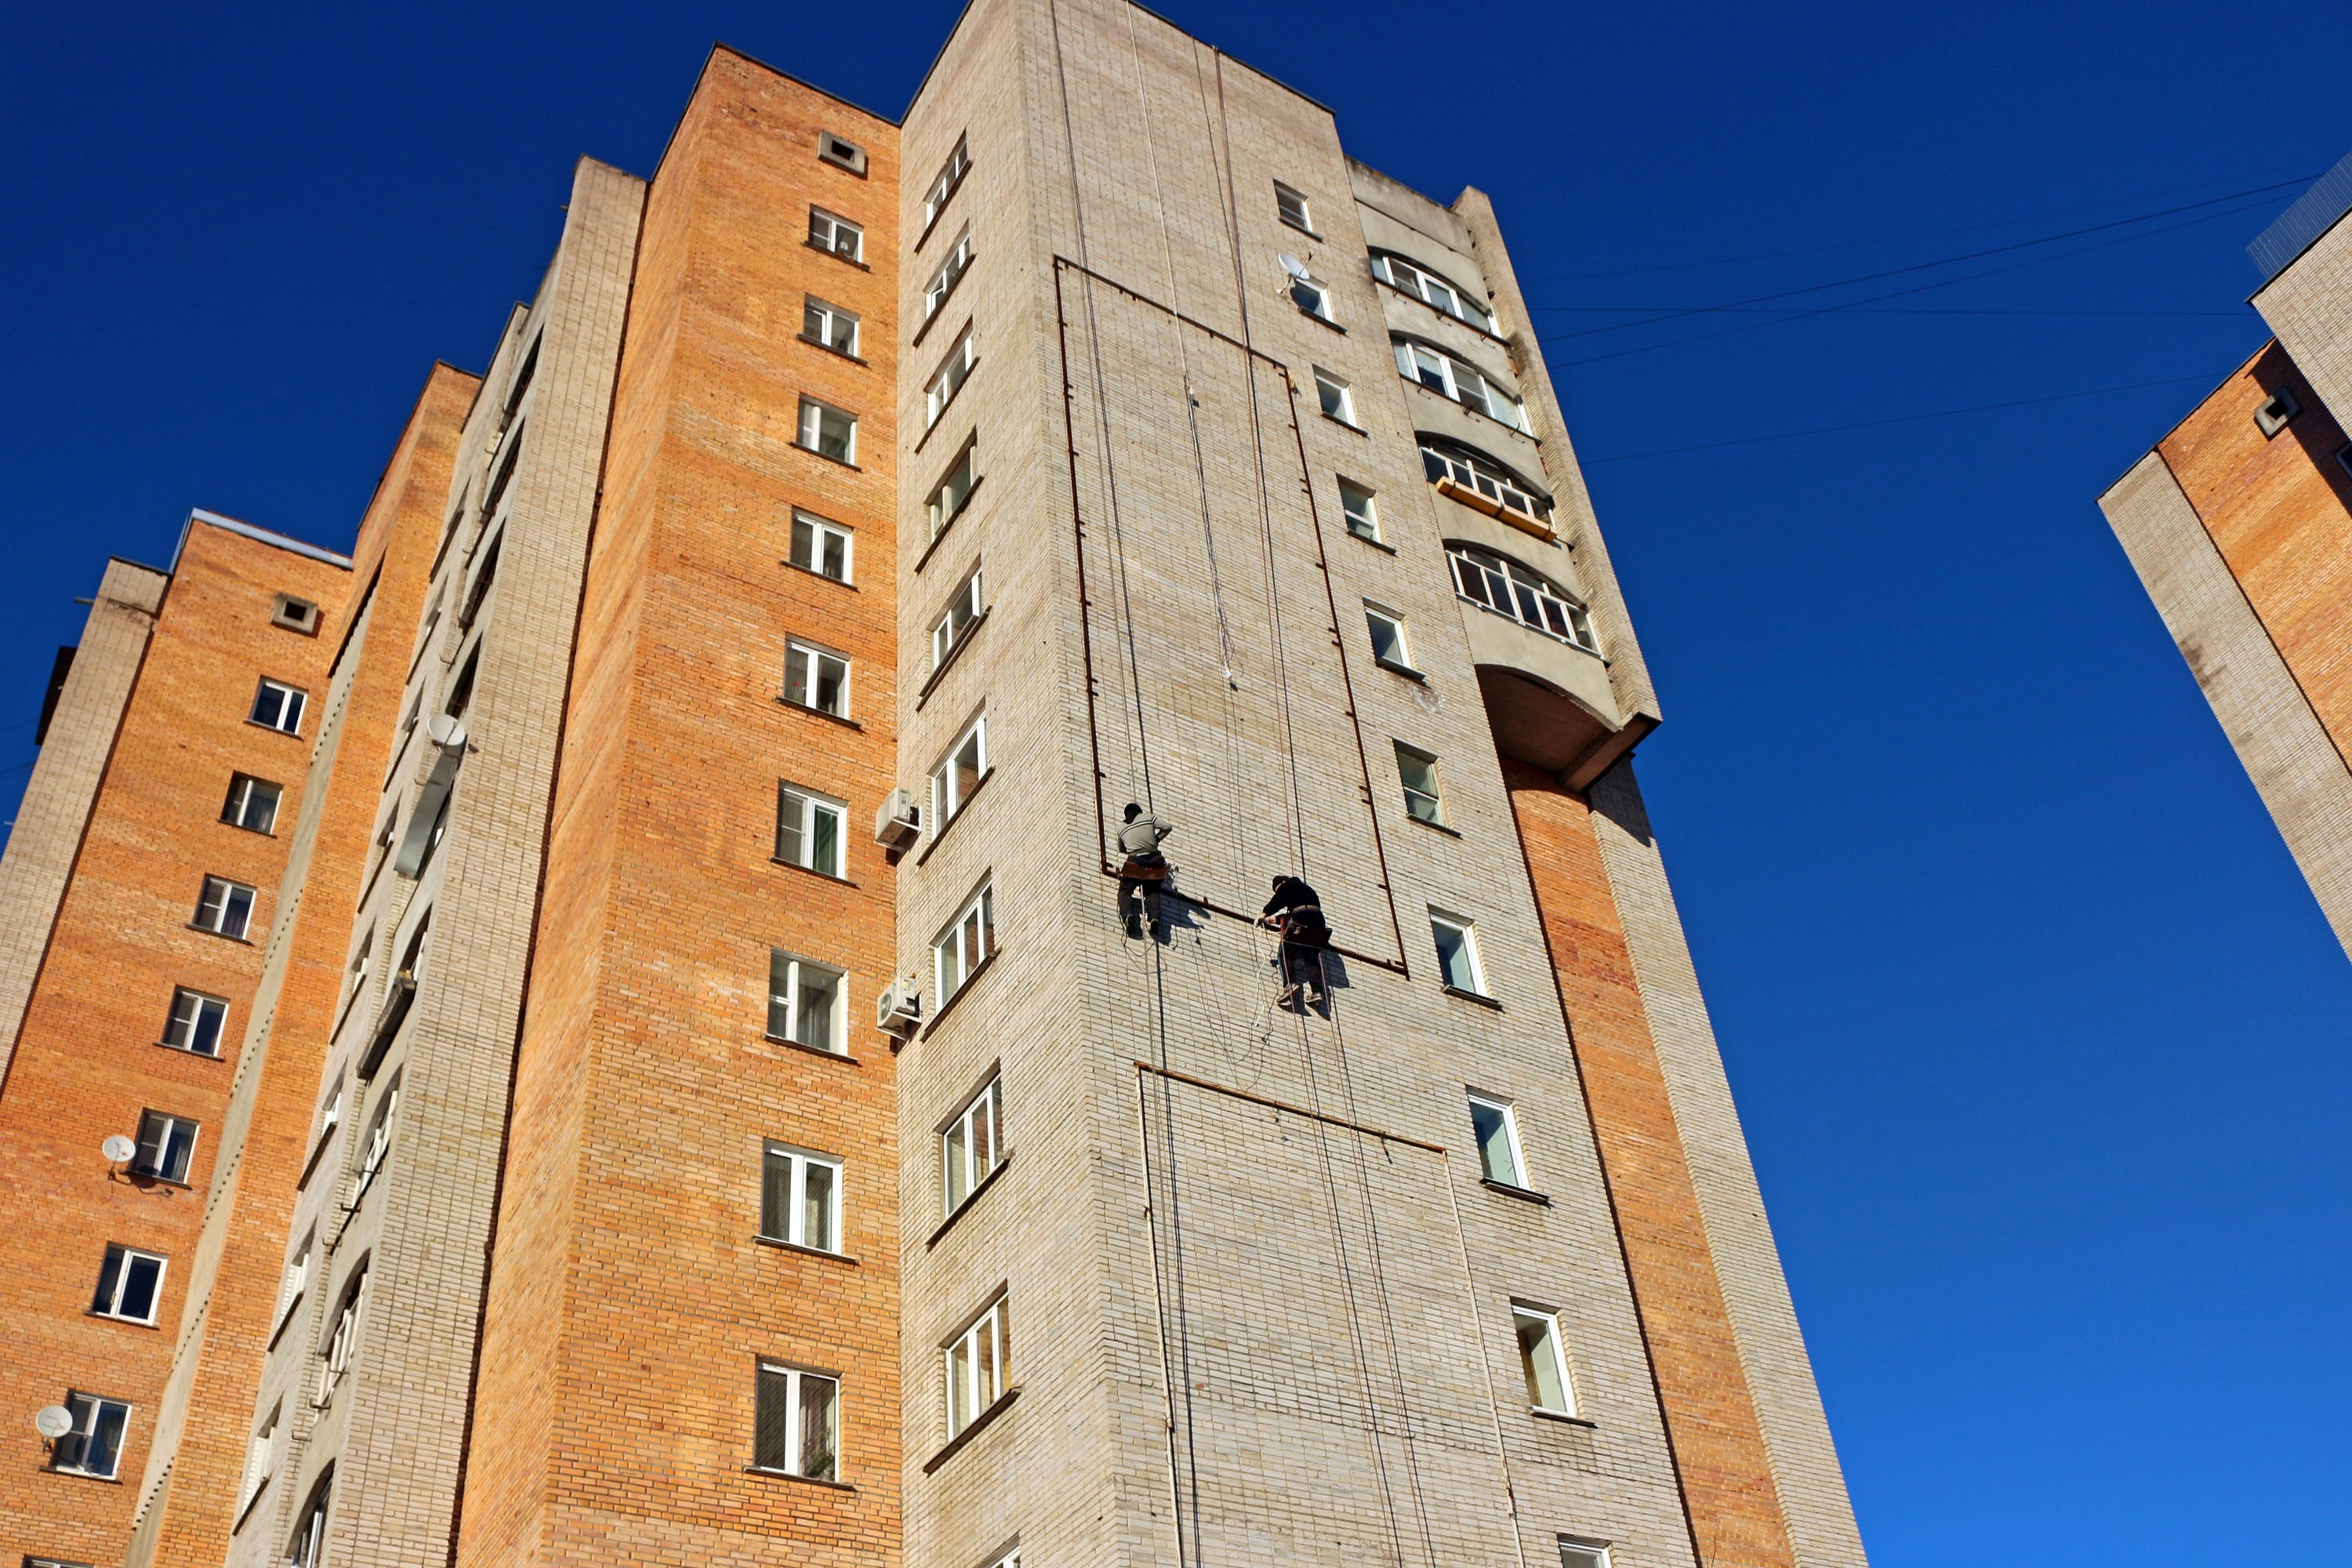 Person Hanging on a High Rise Building